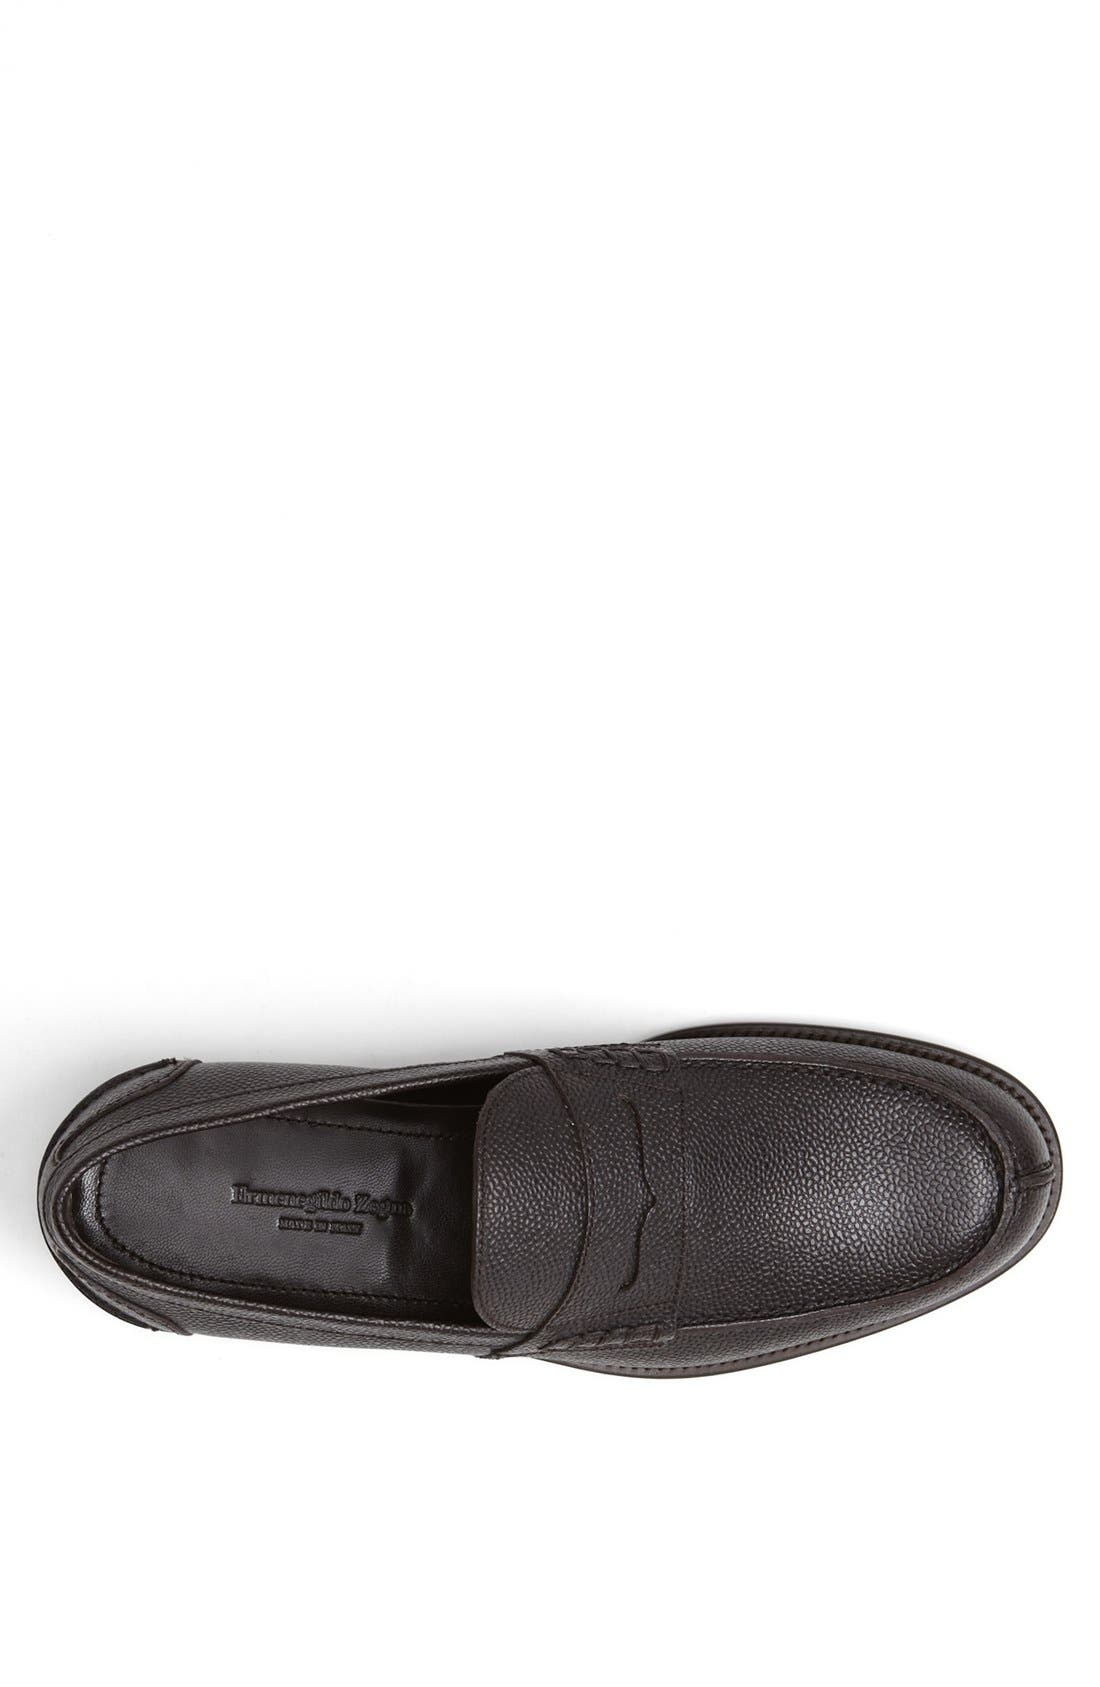 Alternate Image 3  - Ermenegildo Zegna 'College' Penny Loafer